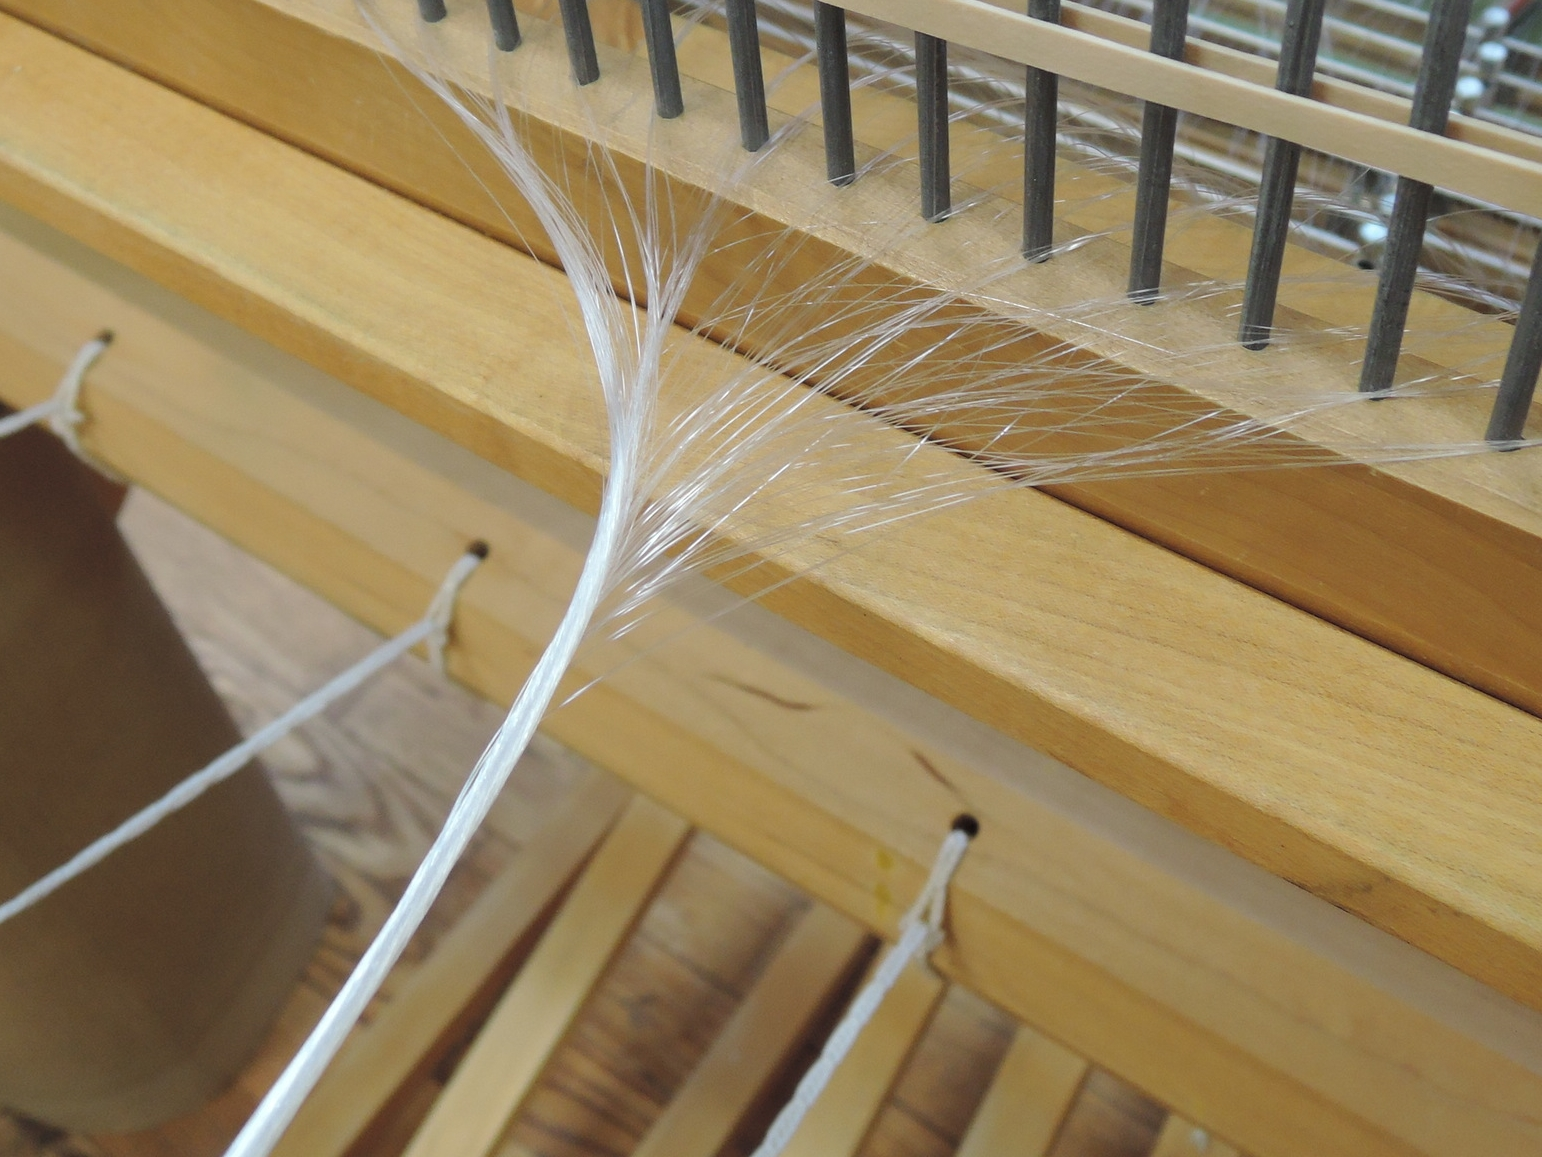 Dressing the loom with invisible threads.